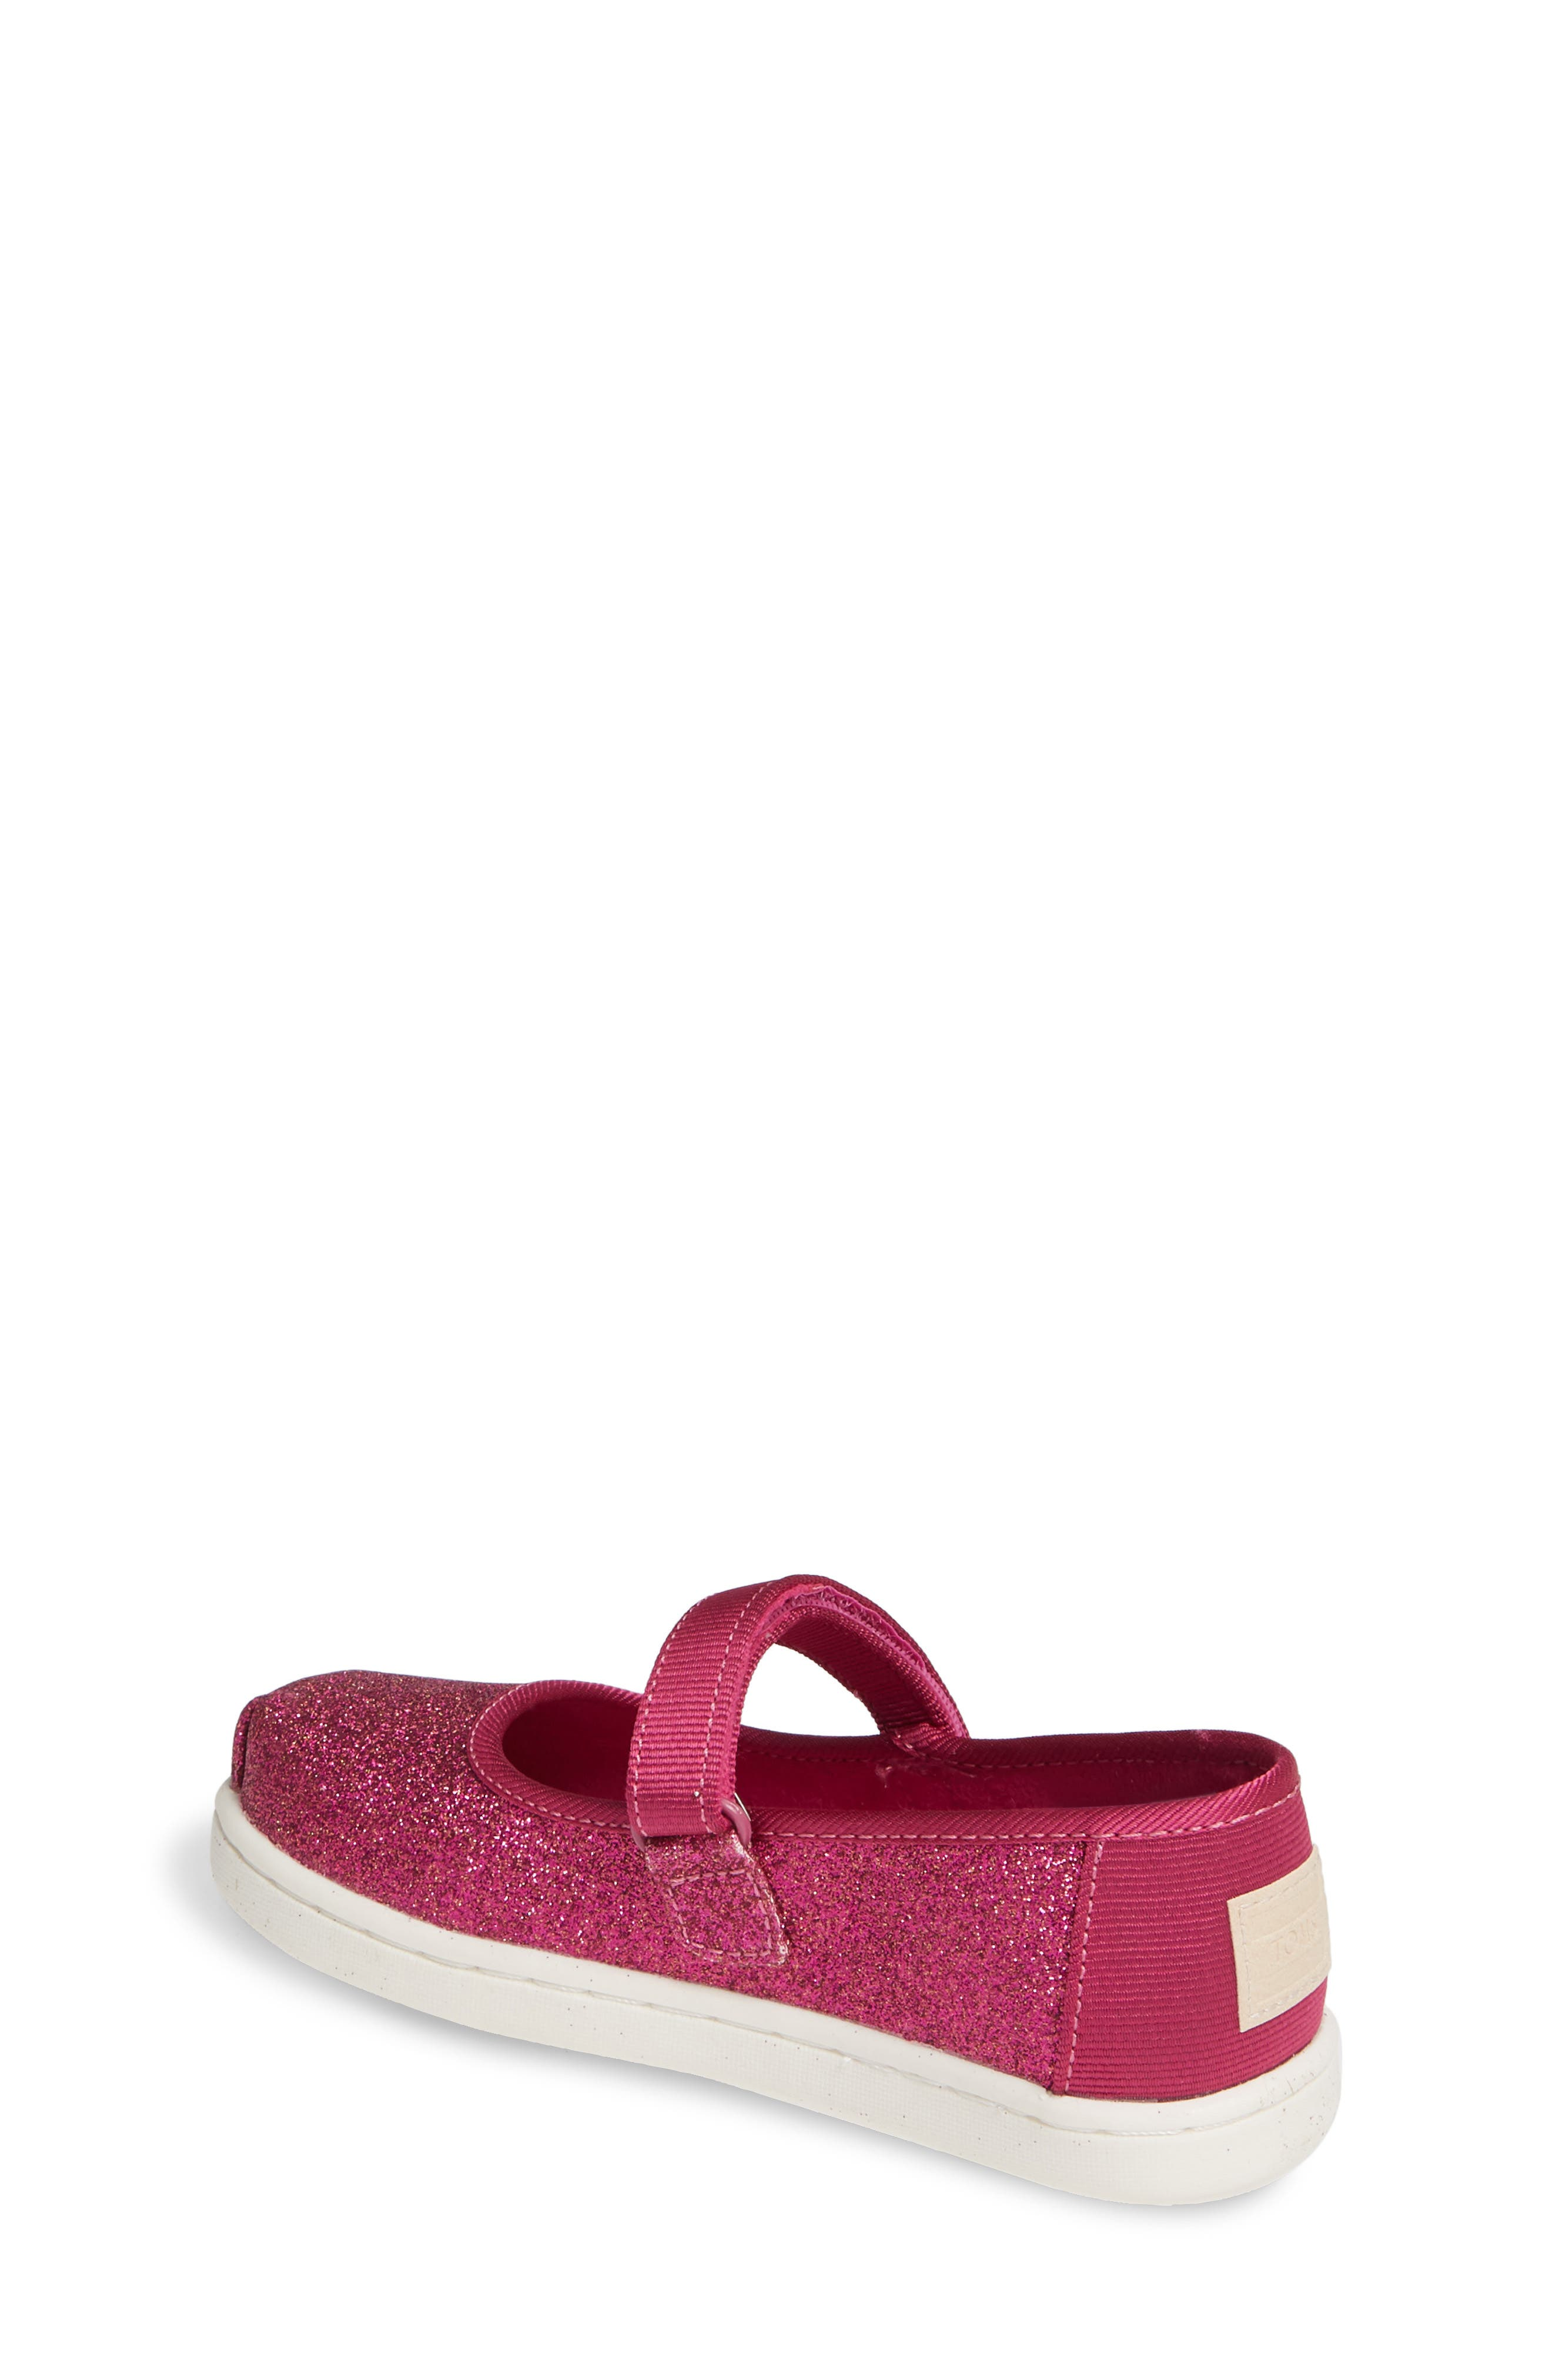 TOMS, Mary Jane Sneaker, Alternate thumbnail 2, color, PINK